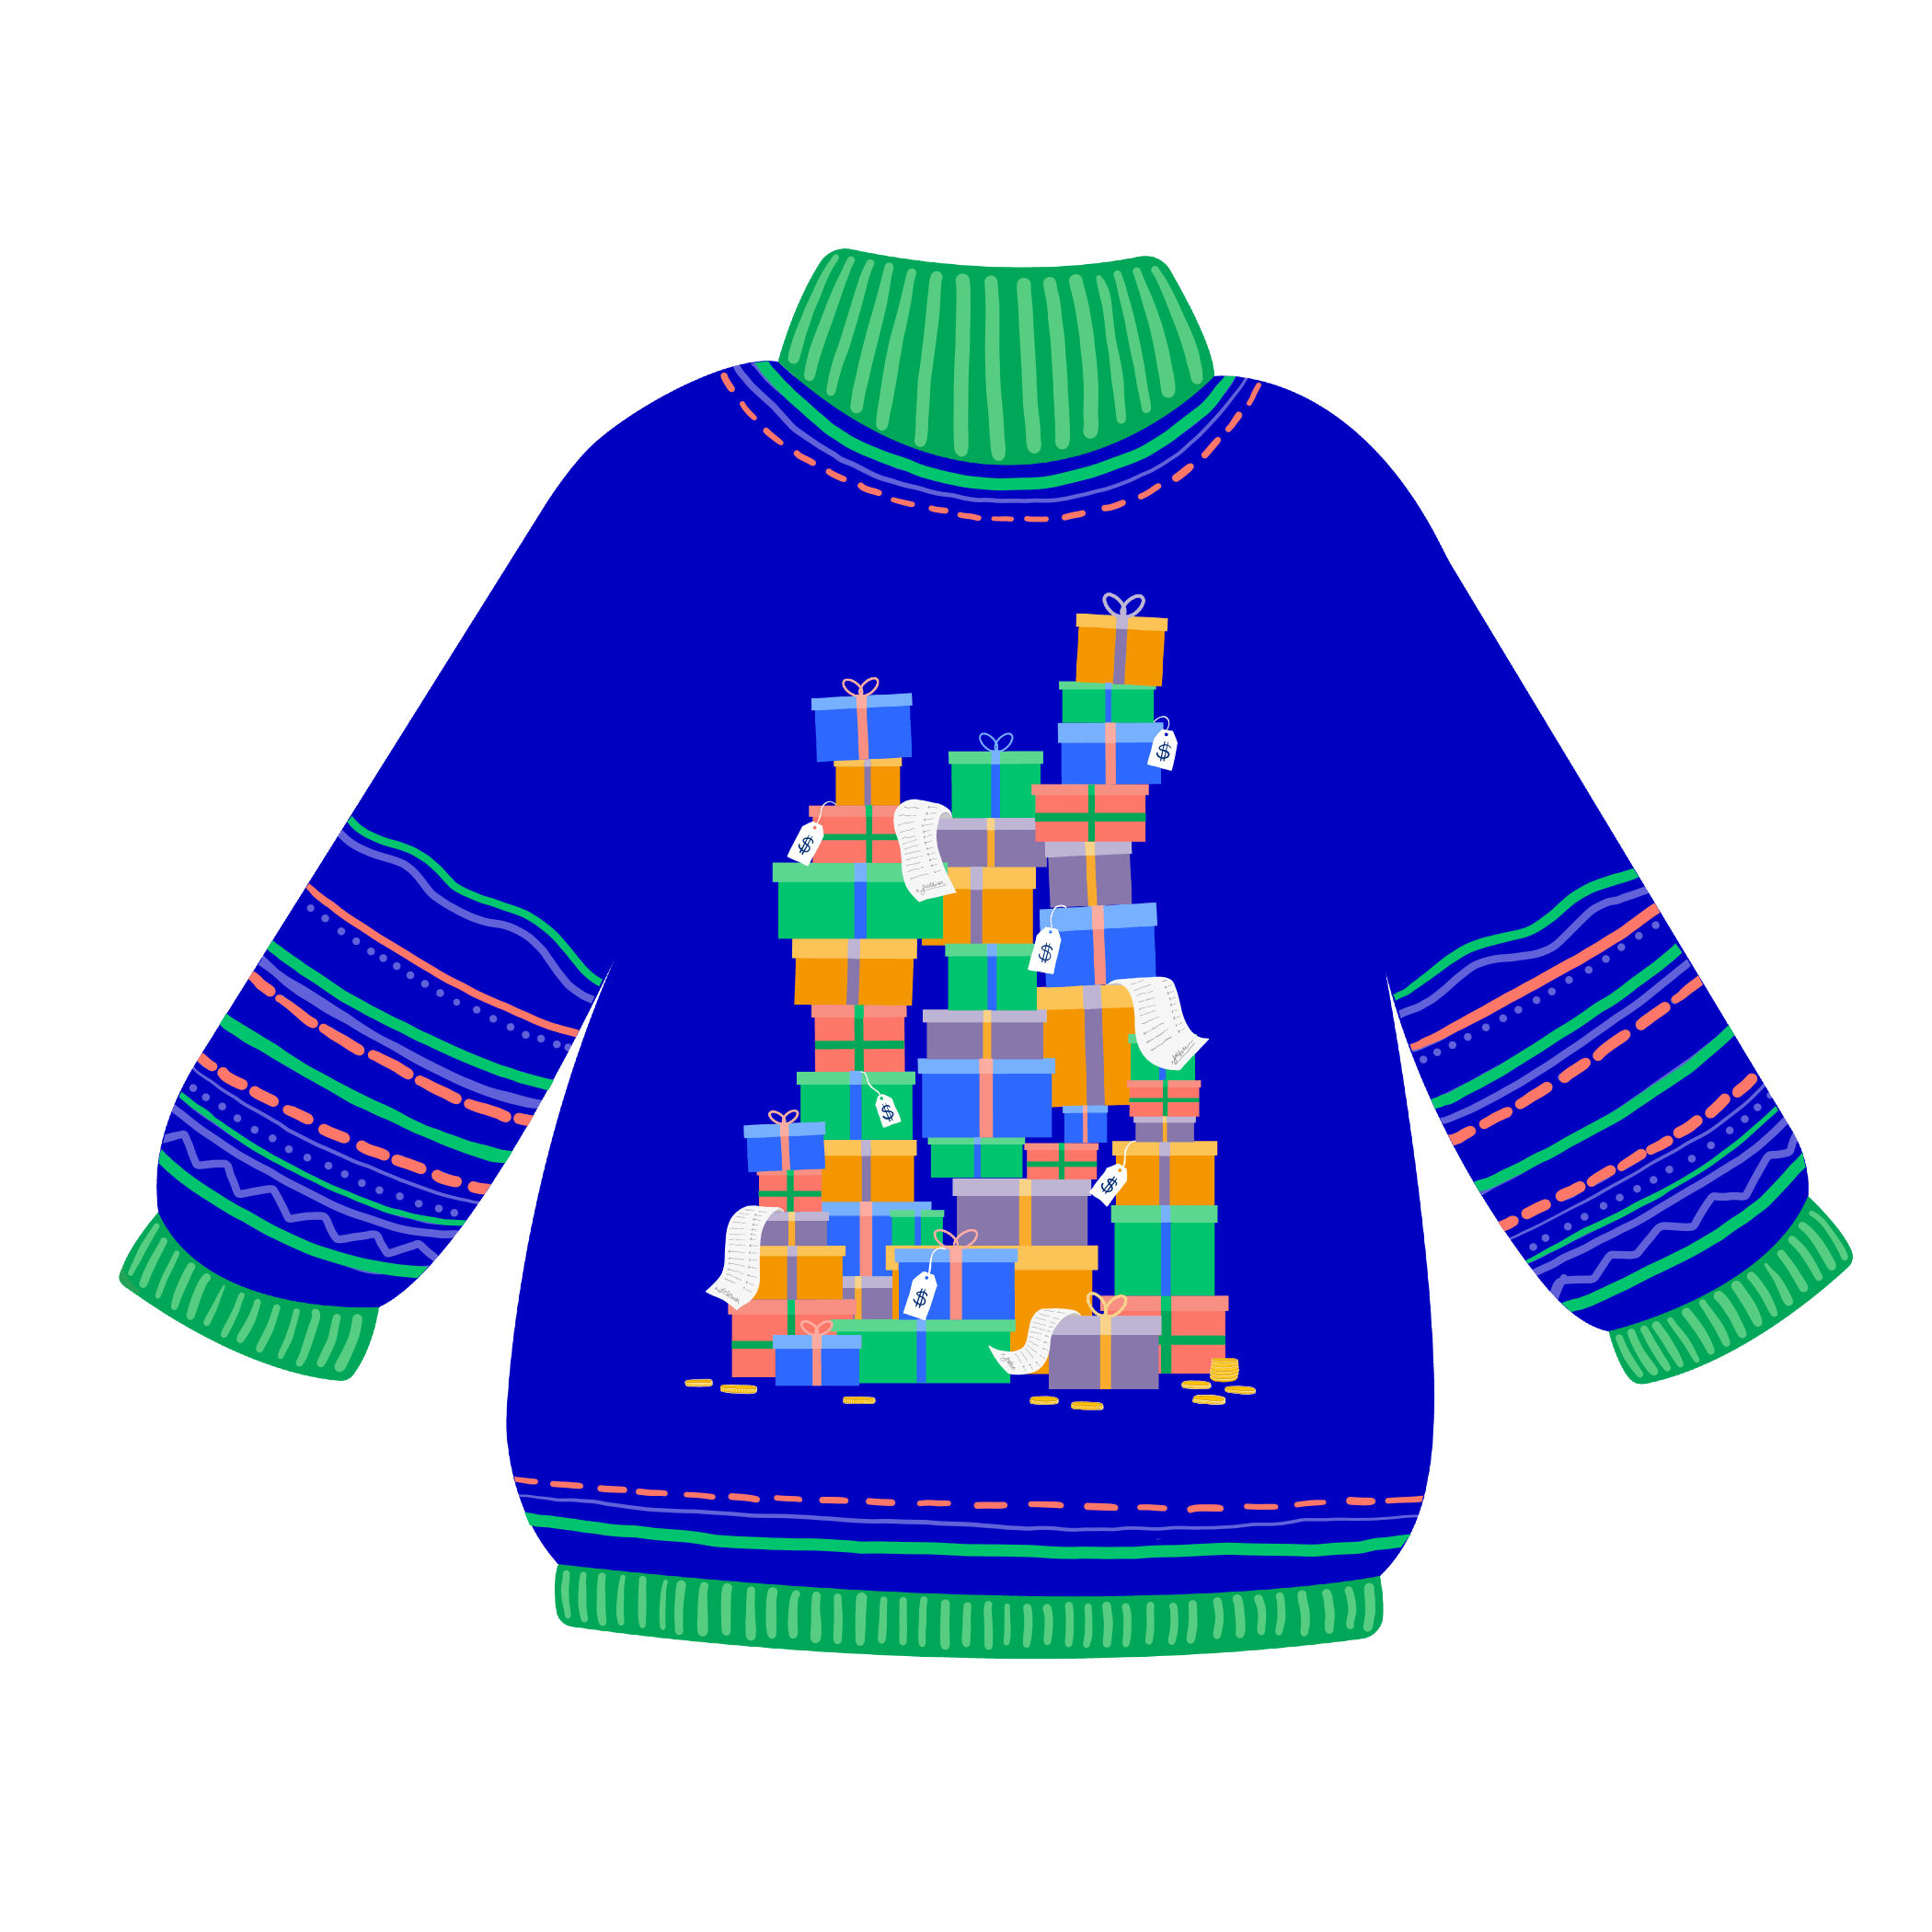 Royal blue sweater with 3 piles of wrapped presents on it